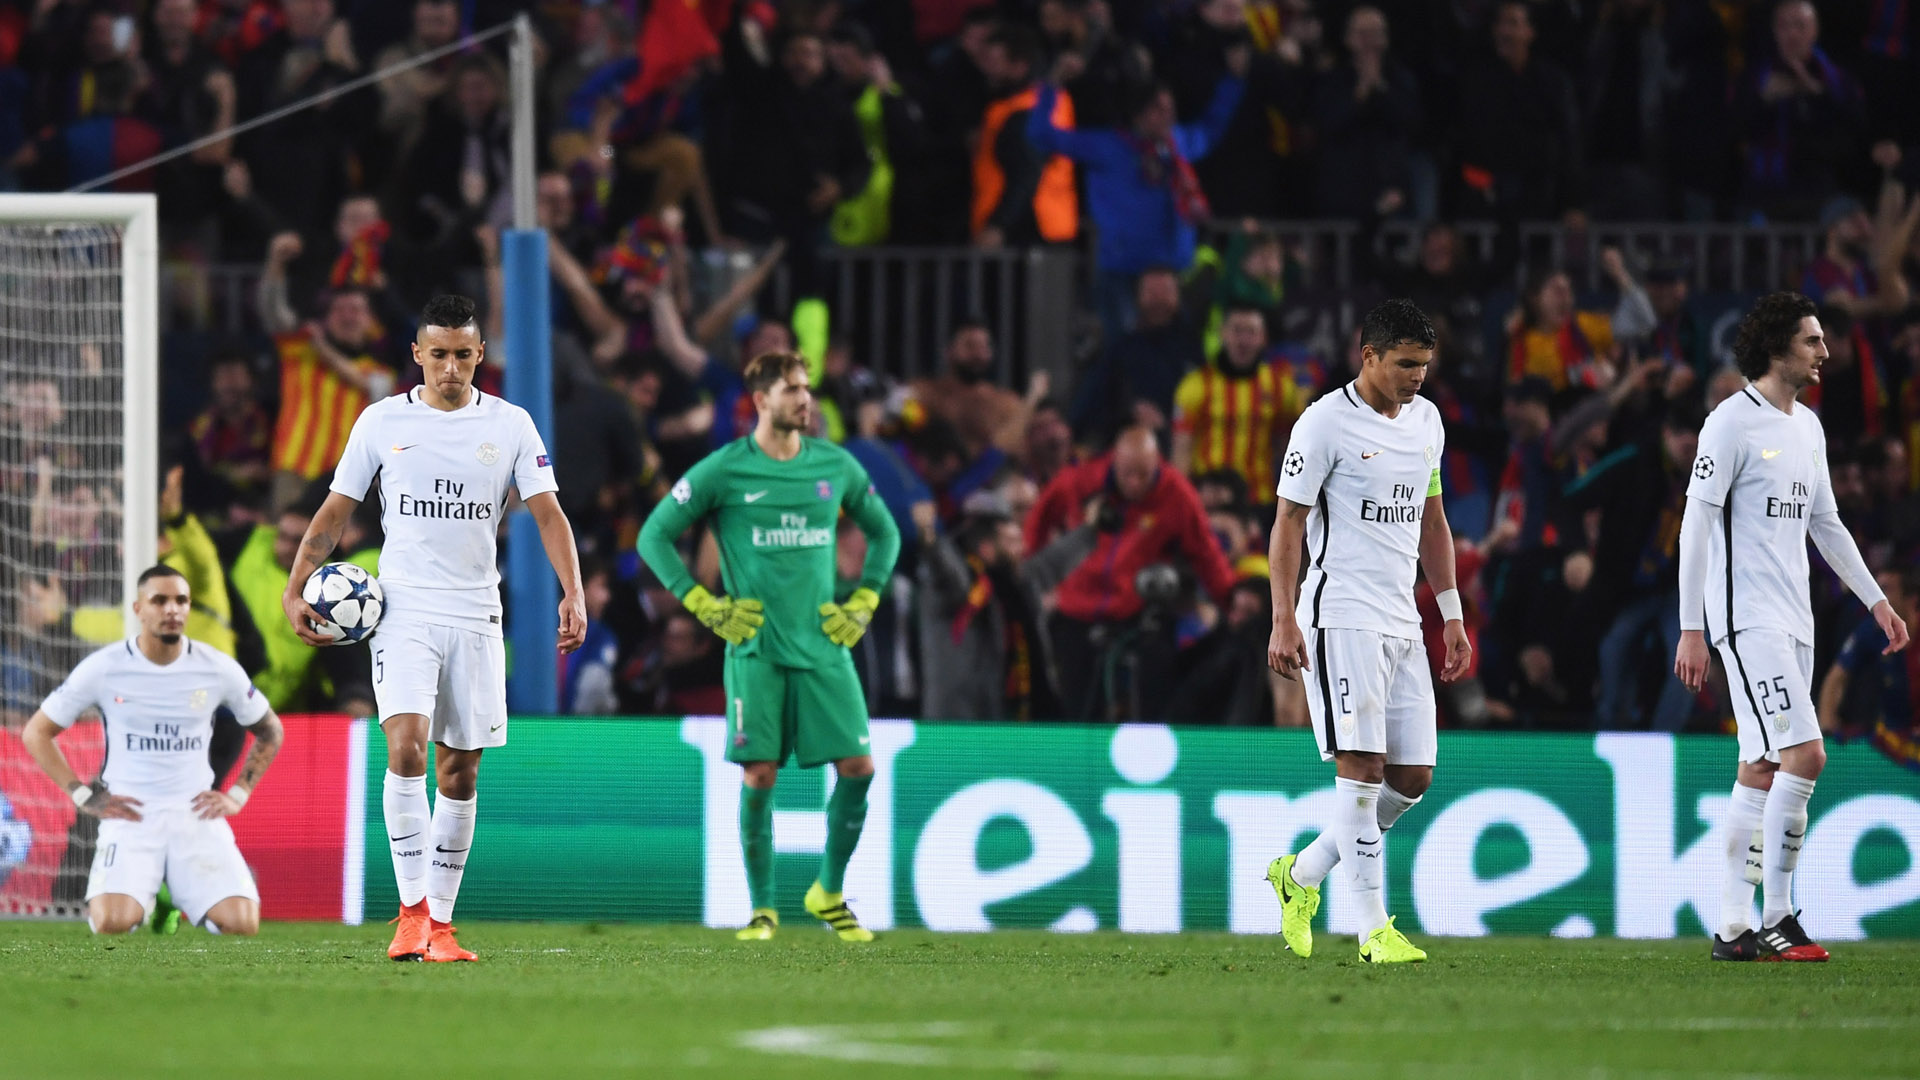 Guardiola sees red, falls short in Champions League again